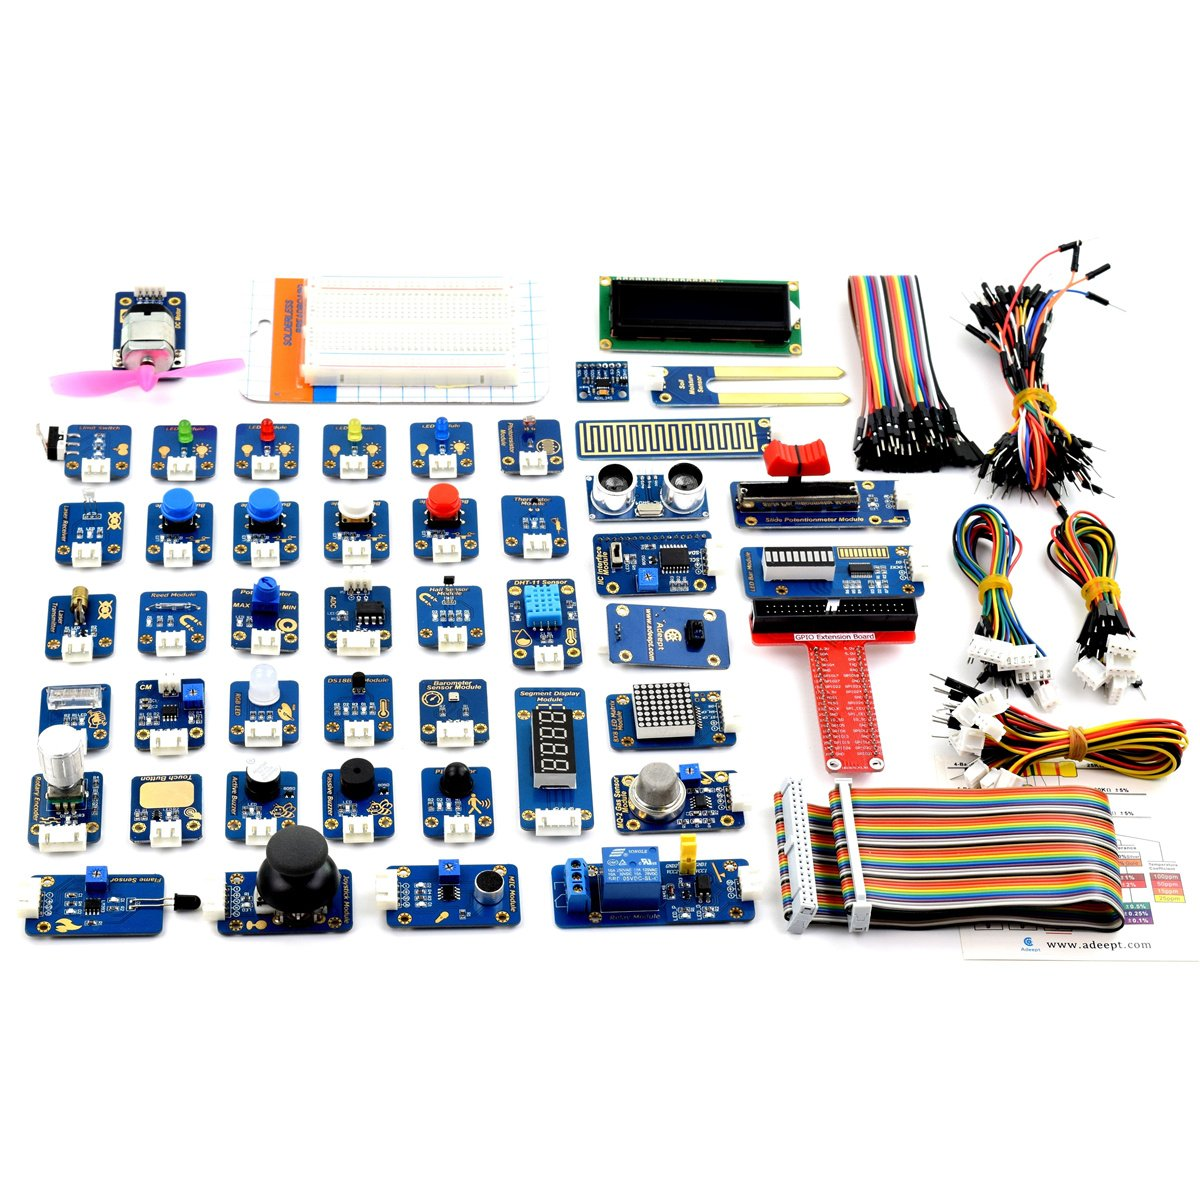 Adeept 46 Modules Ultimate Sensor Kit For Raspberry Pi 32 B Wiringpi Python Library 180 Dht11 With C And Code 150 Pages Pdf Guidebook Computers